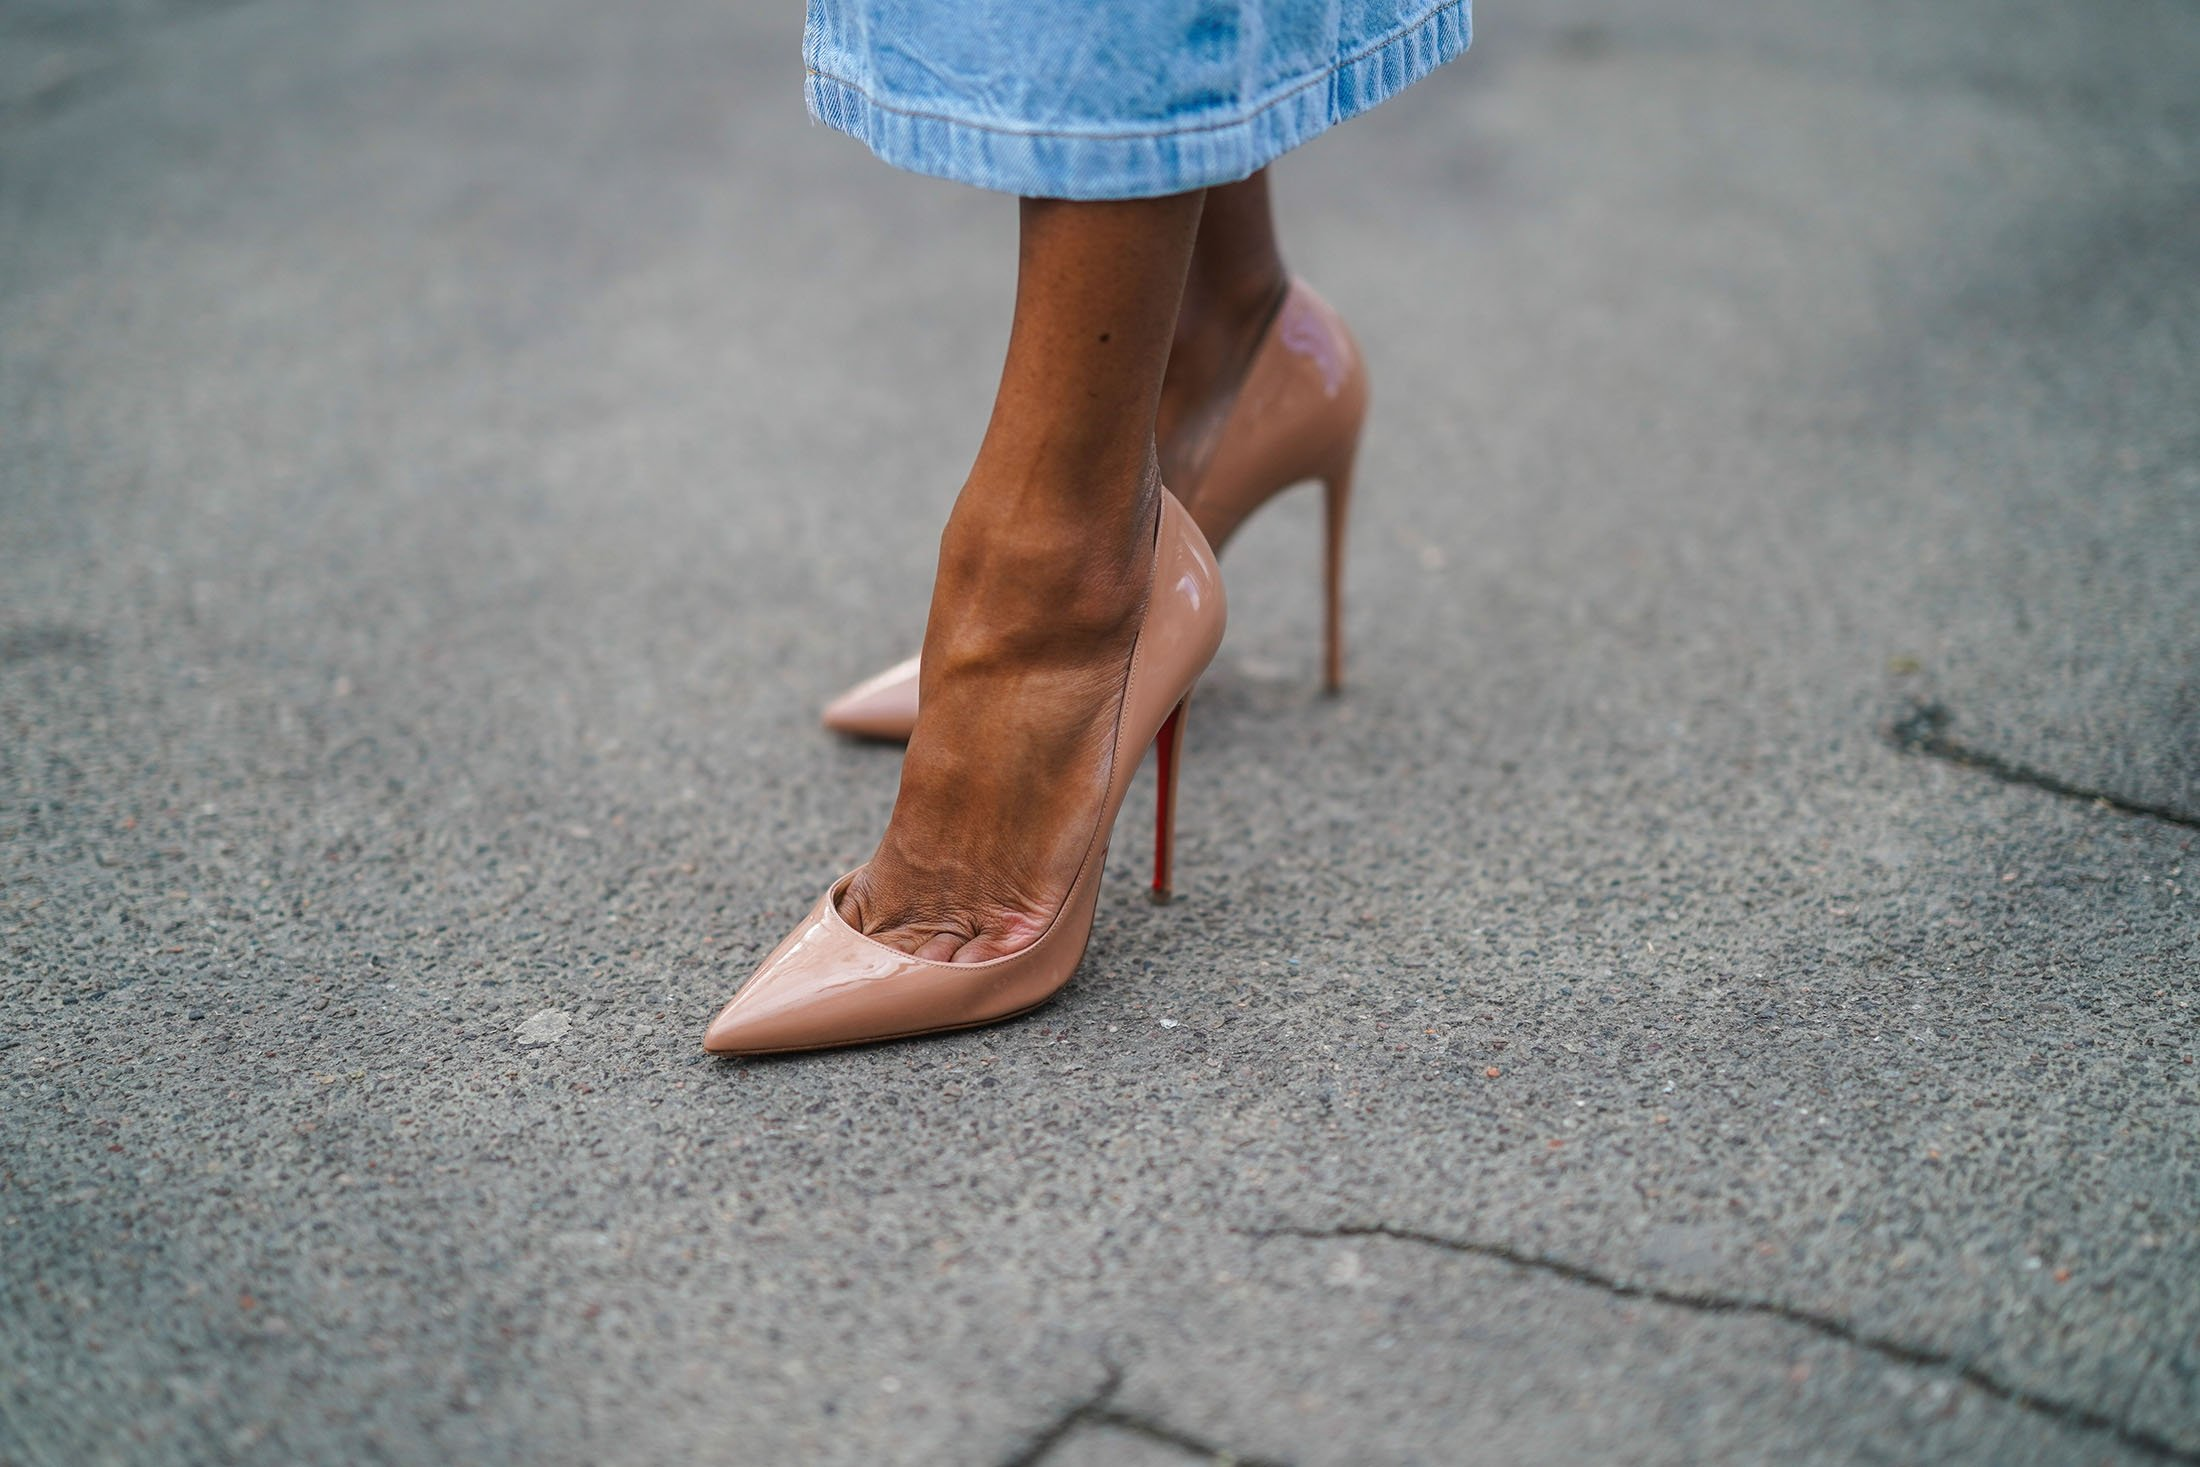 Pointy Louboutin pumps are coveted but also criticized for being the 'most painful shoes' on the planet. (Getty Images)